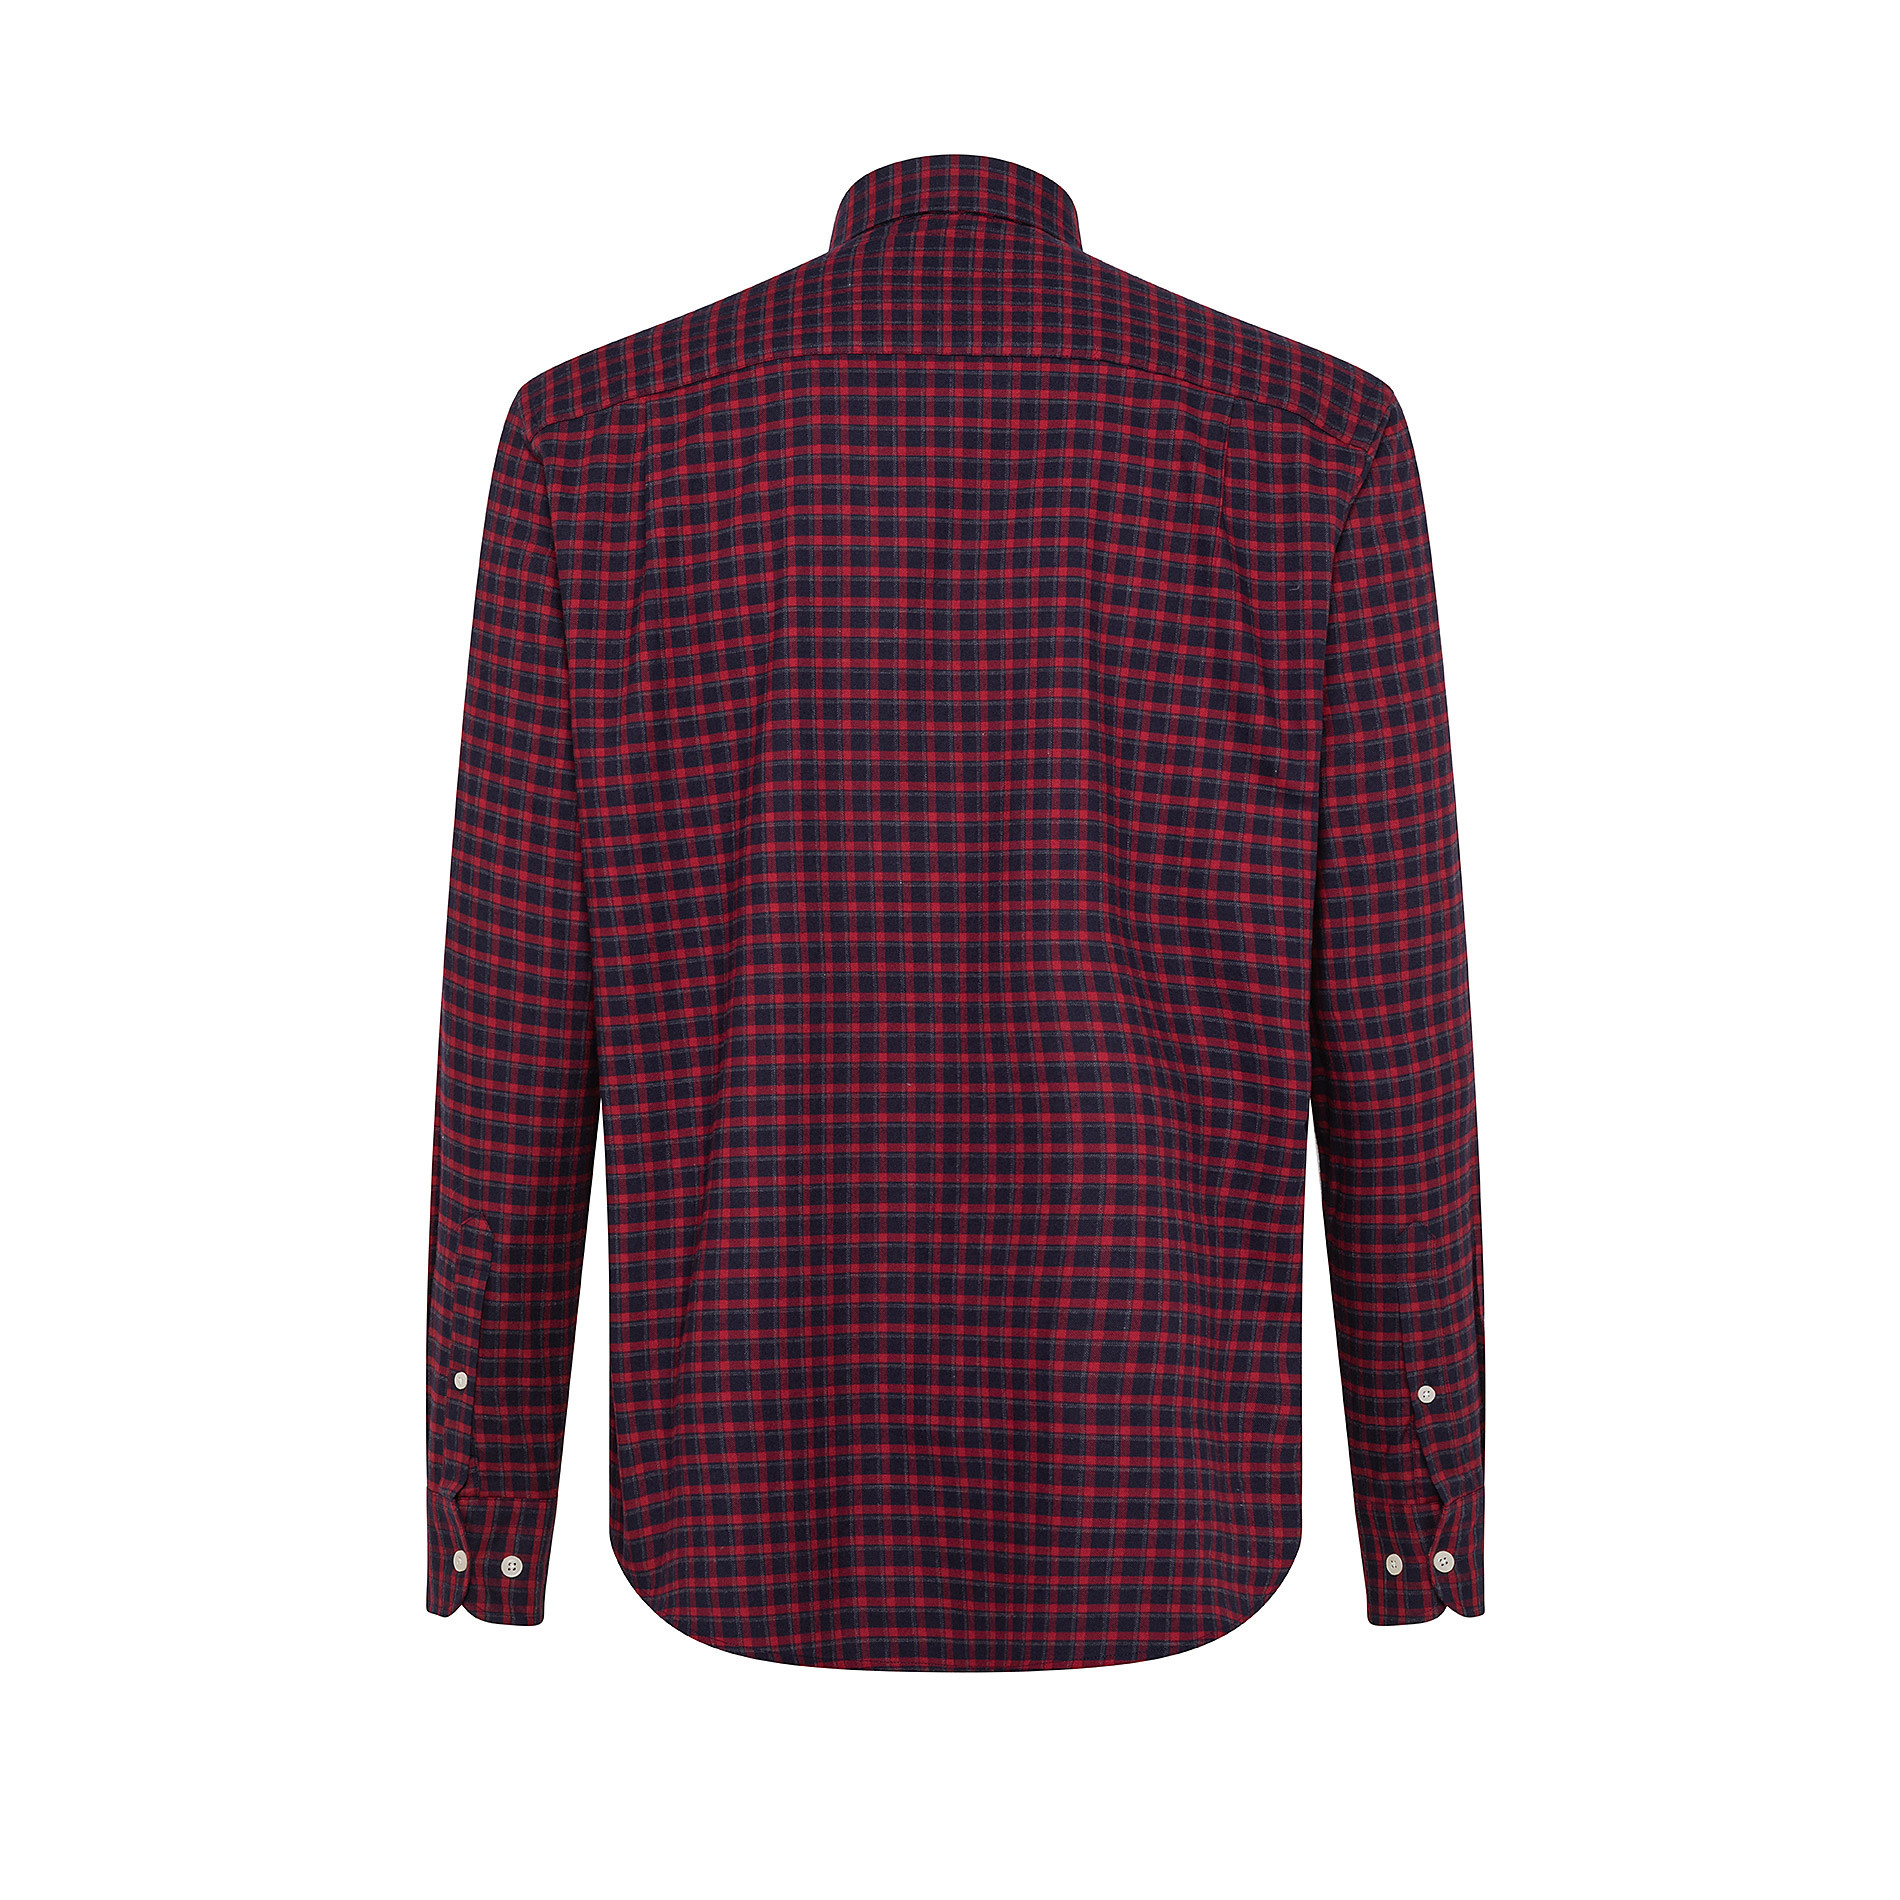 Camicia button-down regular fit in cotone organico, Rosso, large image number 1